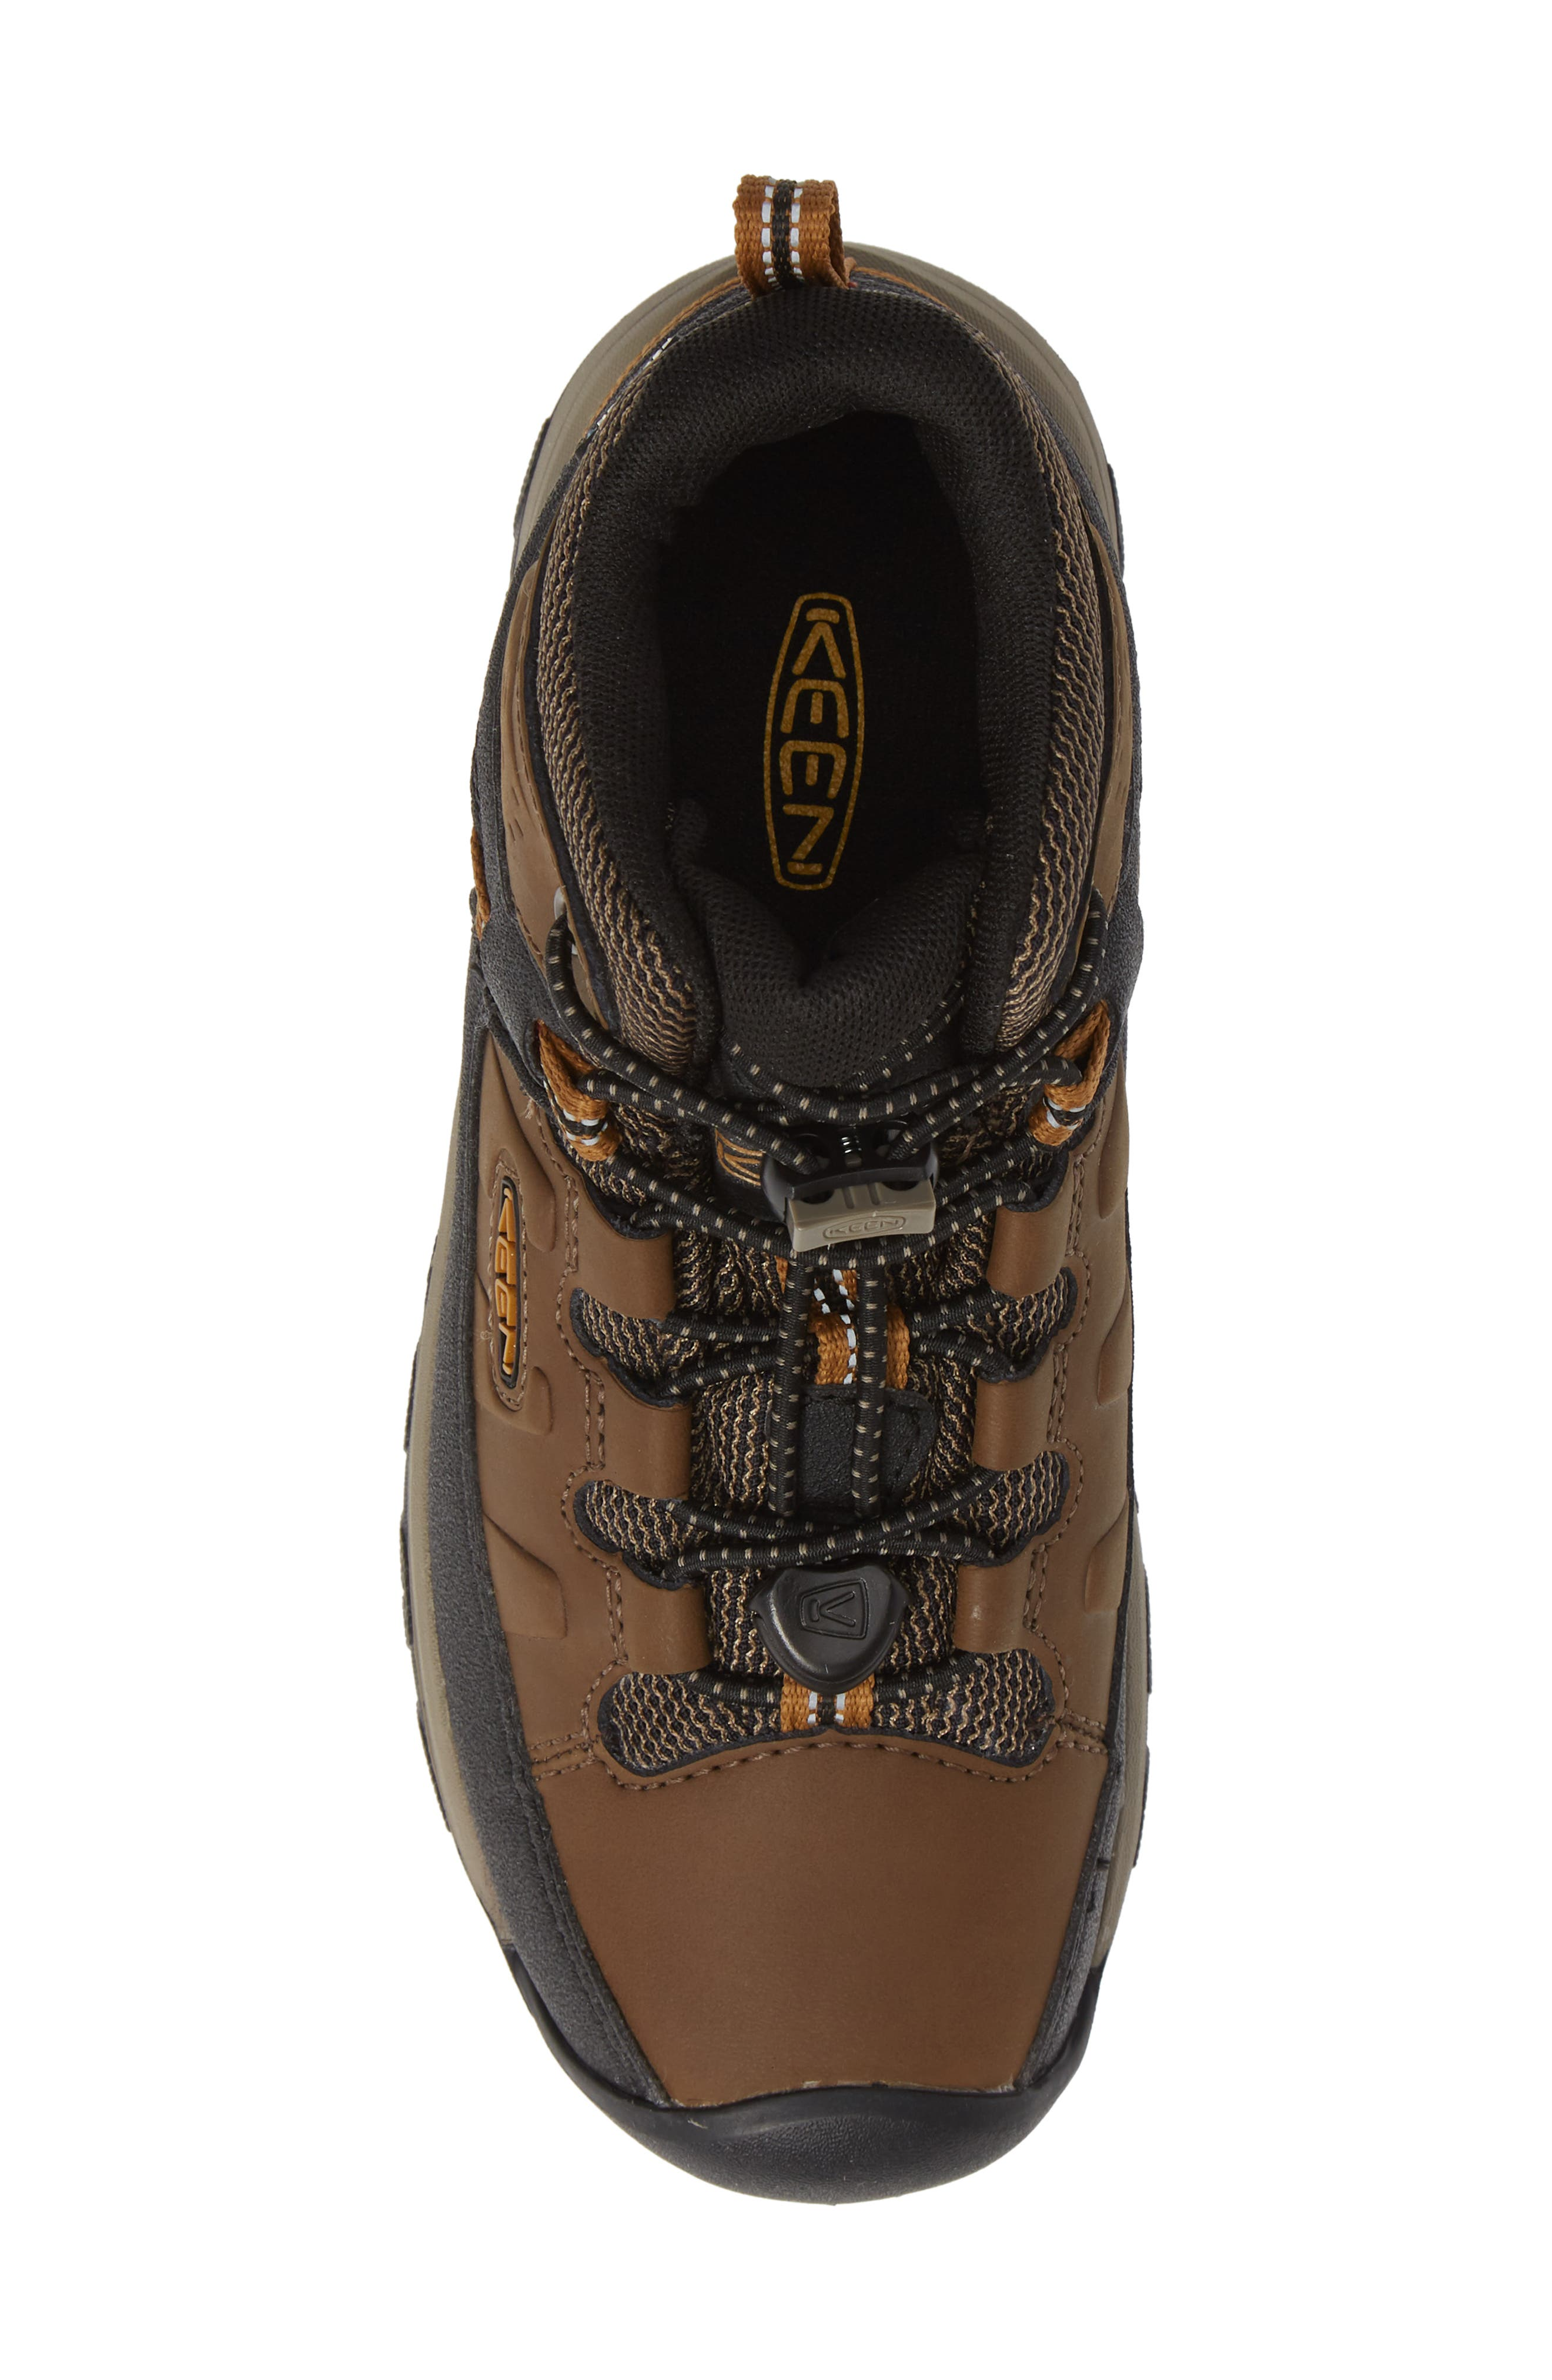 Targhee Mid Waterproof Hiking Boot,                             Alternate thumbnail 5, color,                             DARK EARTH/ GOLDEN BROWN